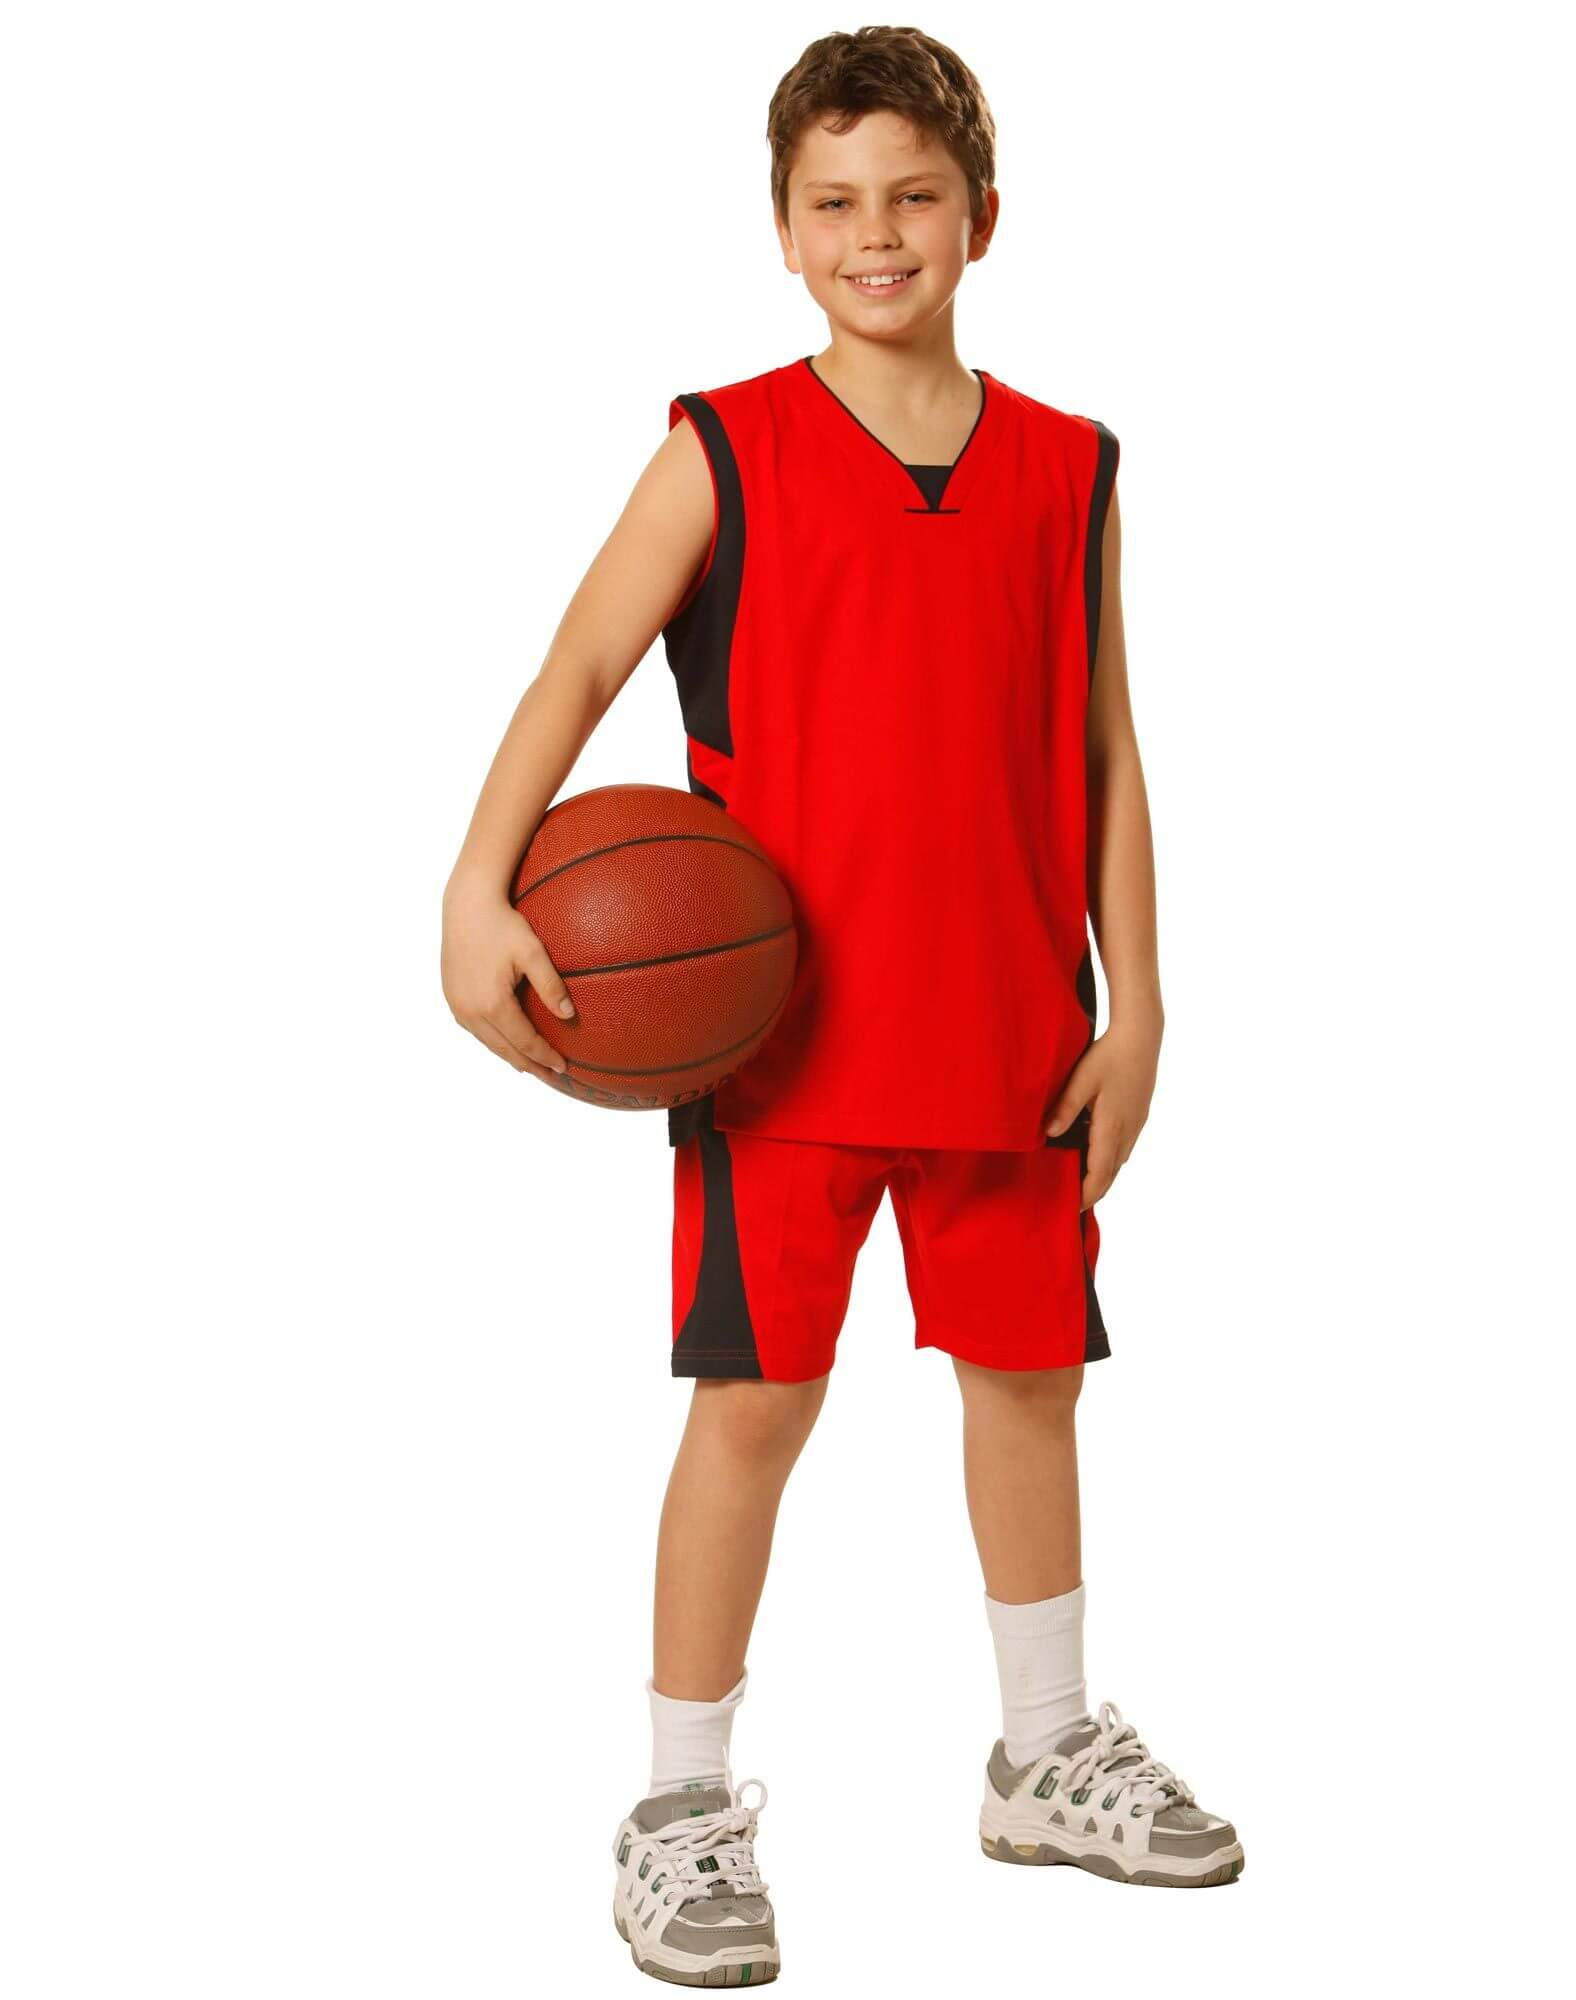 Kids Basketball Jerseys Manufacturers in Durgapur